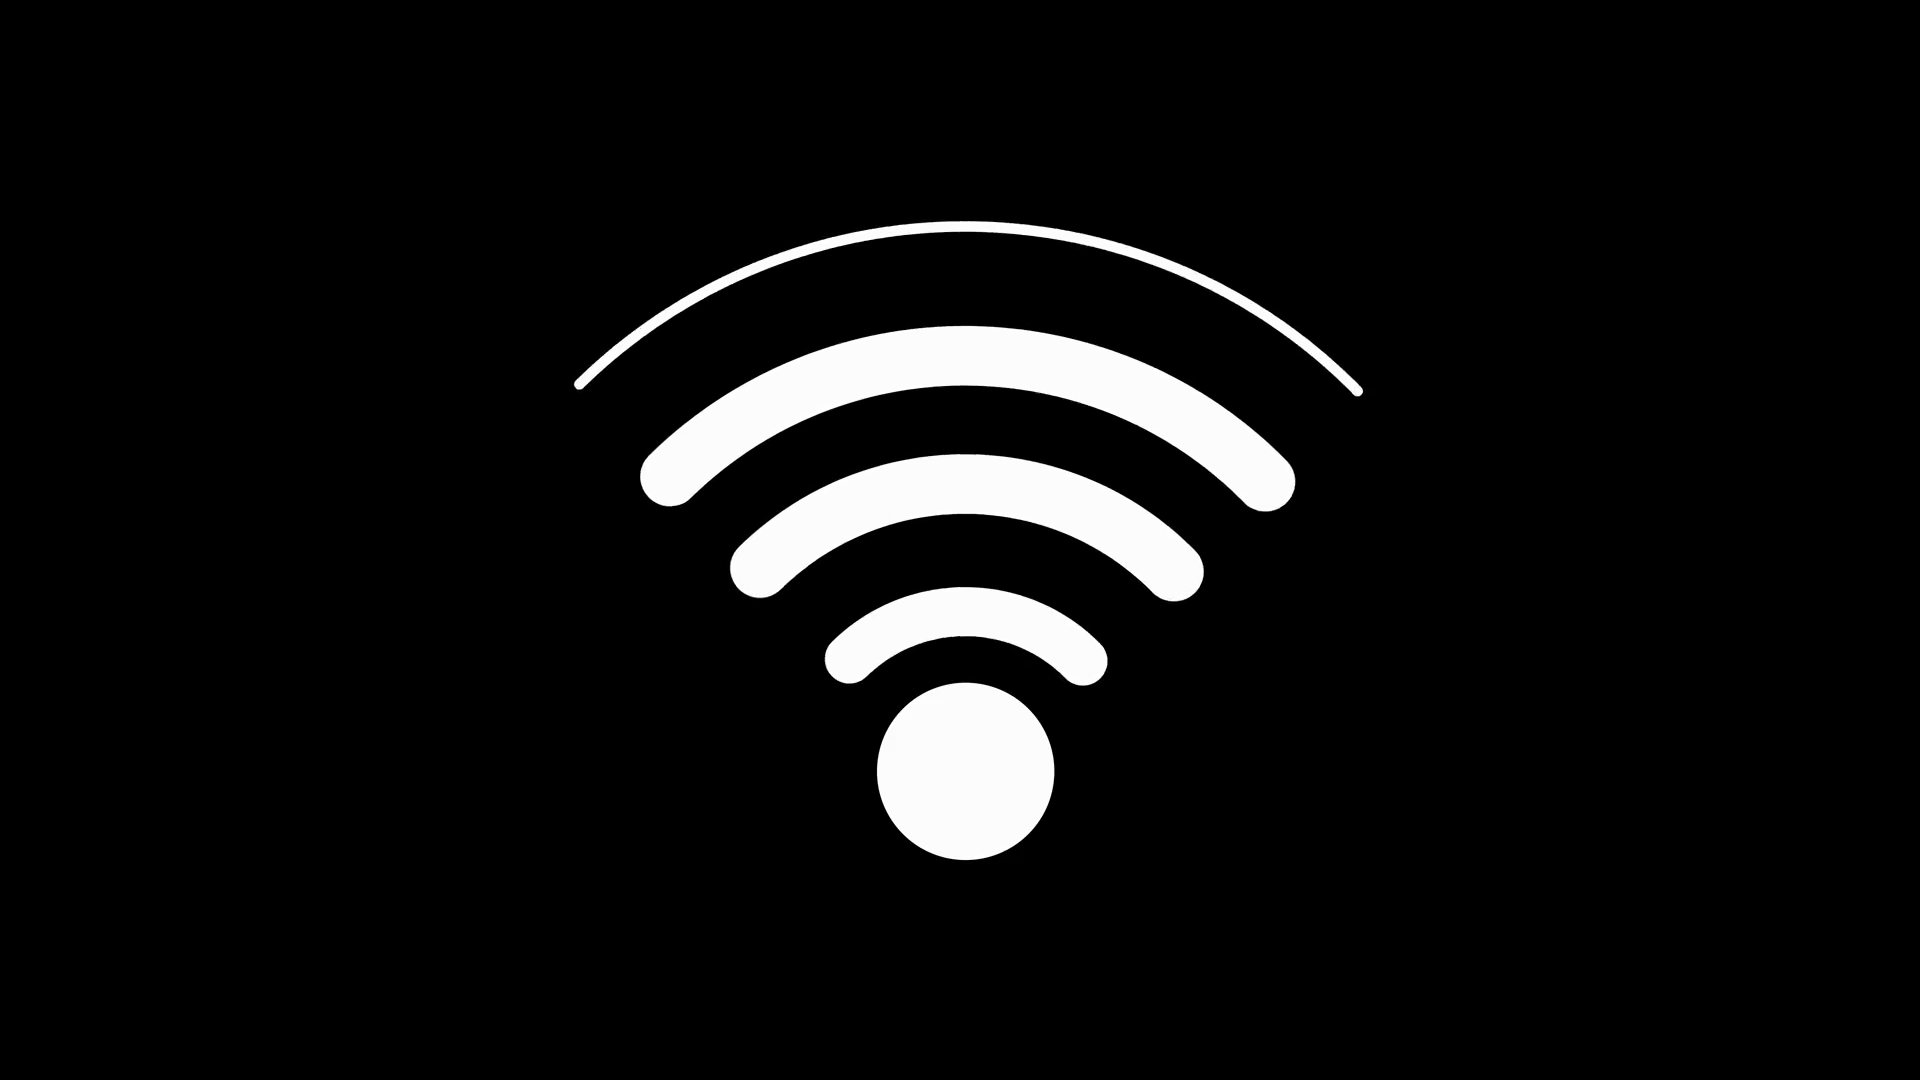 videoblocks-icon-connection-to-the-wifi-point-with-a-changing-level-of-signal-wireless-network-icon-wifi-symbol-4k-seamless-loop-animation_hw7tpvwvm_thumbnail-full01